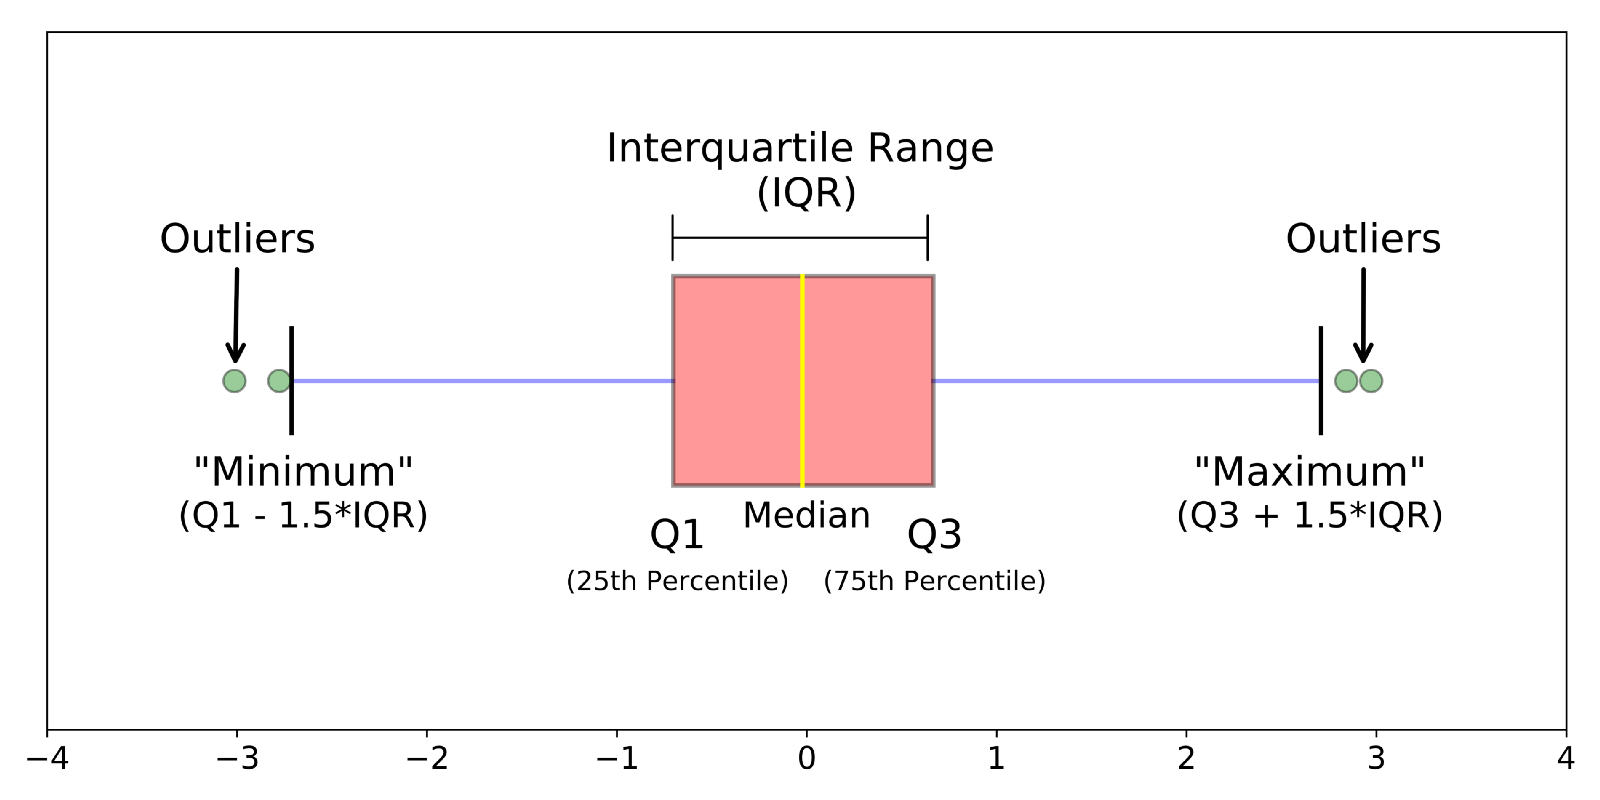 1*2c21SkzJMf3frPXPAR_gZA understanding boxplots towards data science